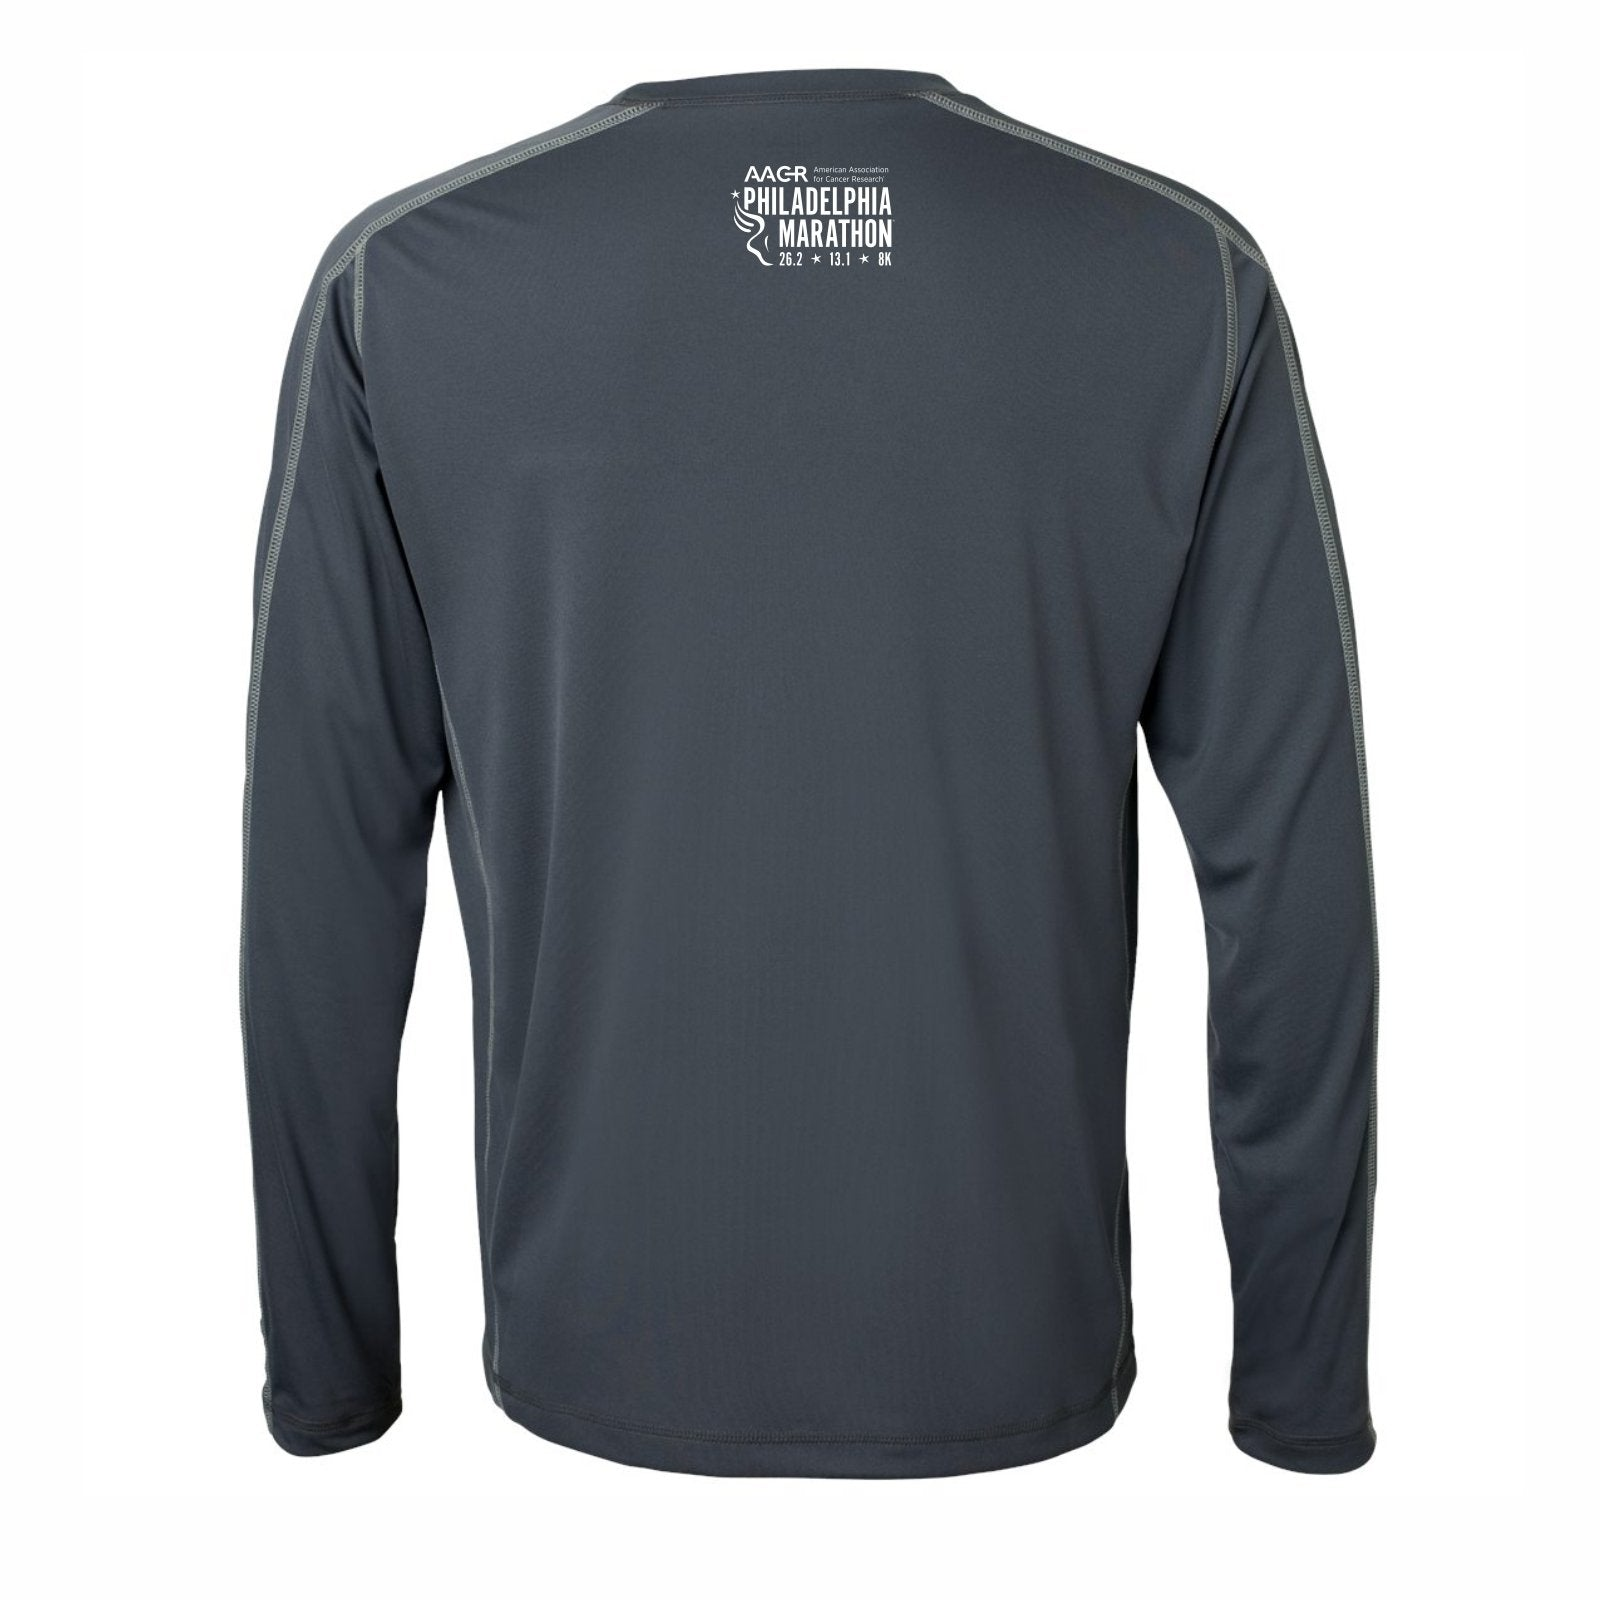 Men's LS Contrast-Stitch Tech Tee -Slate Grey 'Arch Design' - AACR Philadelphia Marathon